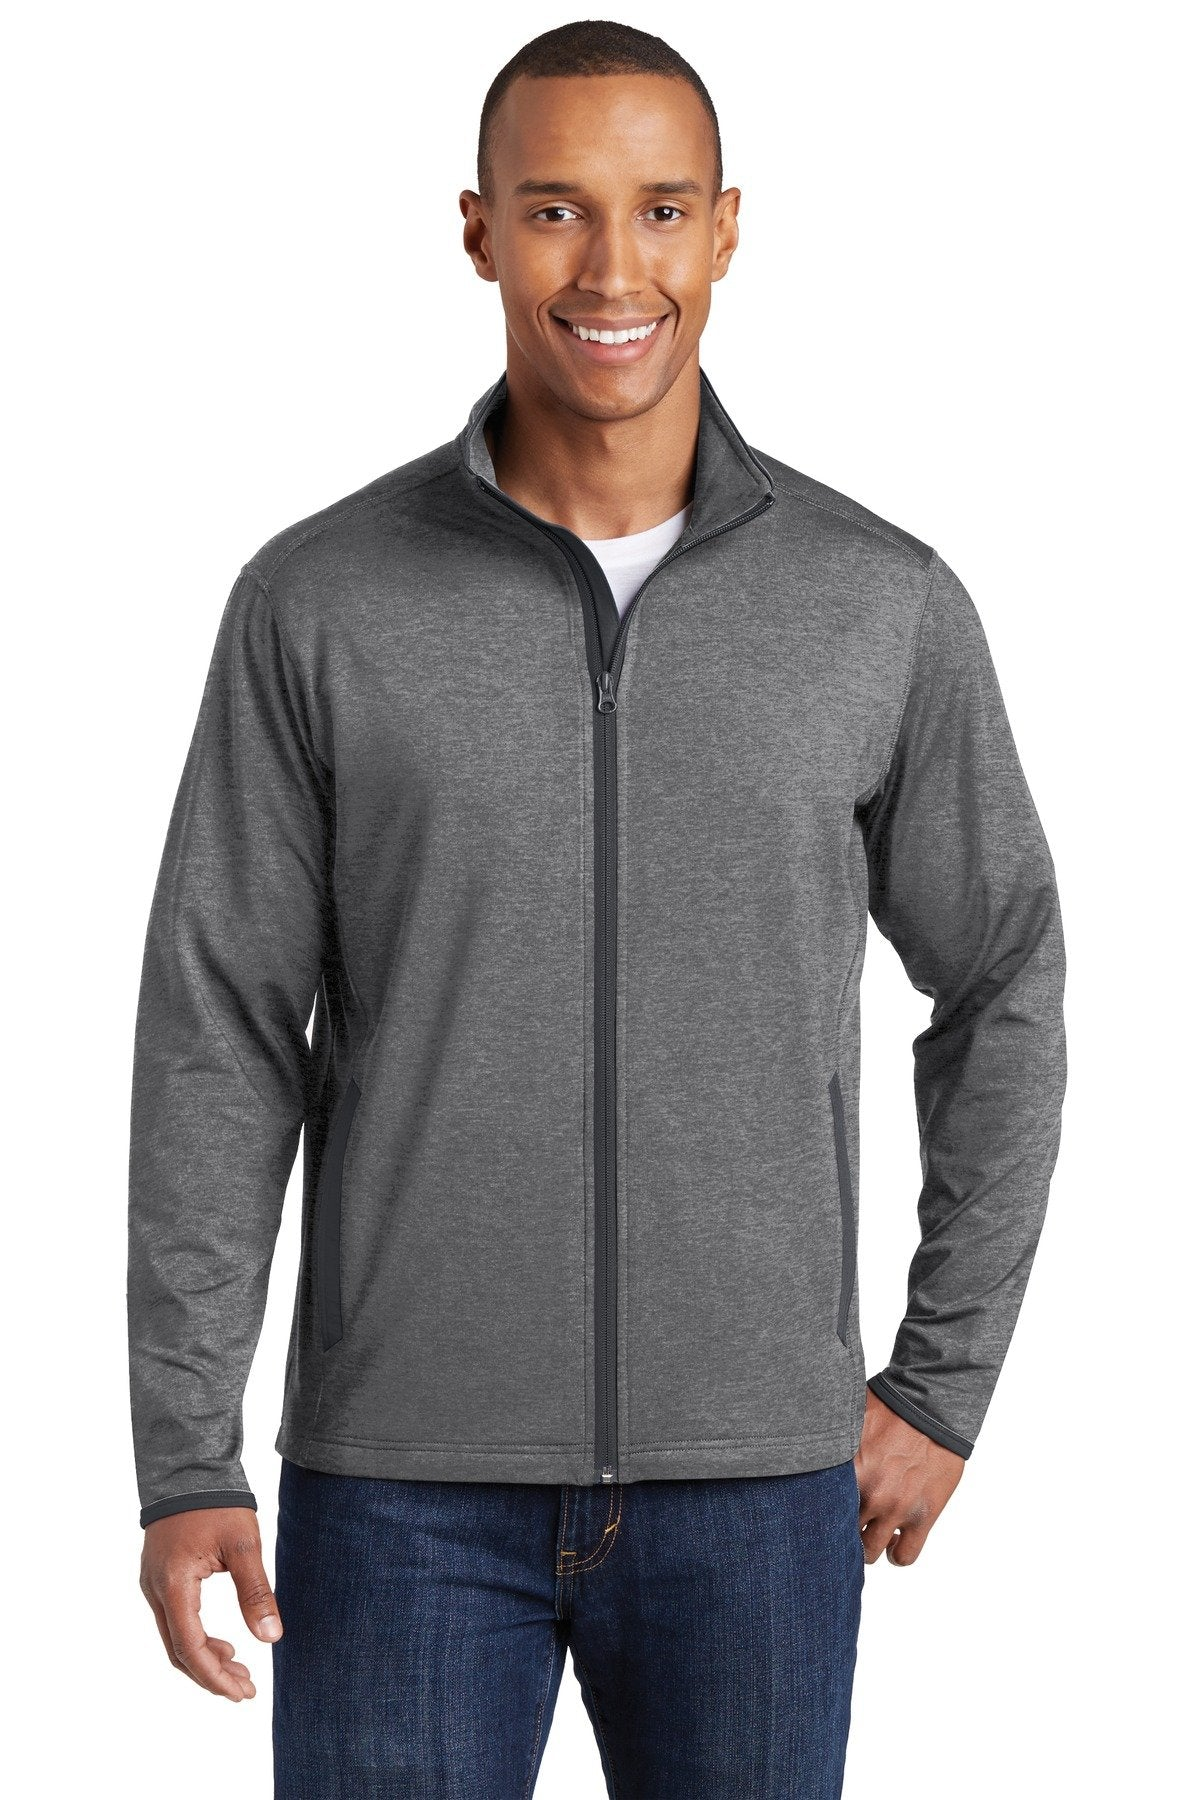 Charcoal Grey Heather/ Charcoal Grey - Sport-Tek ST853